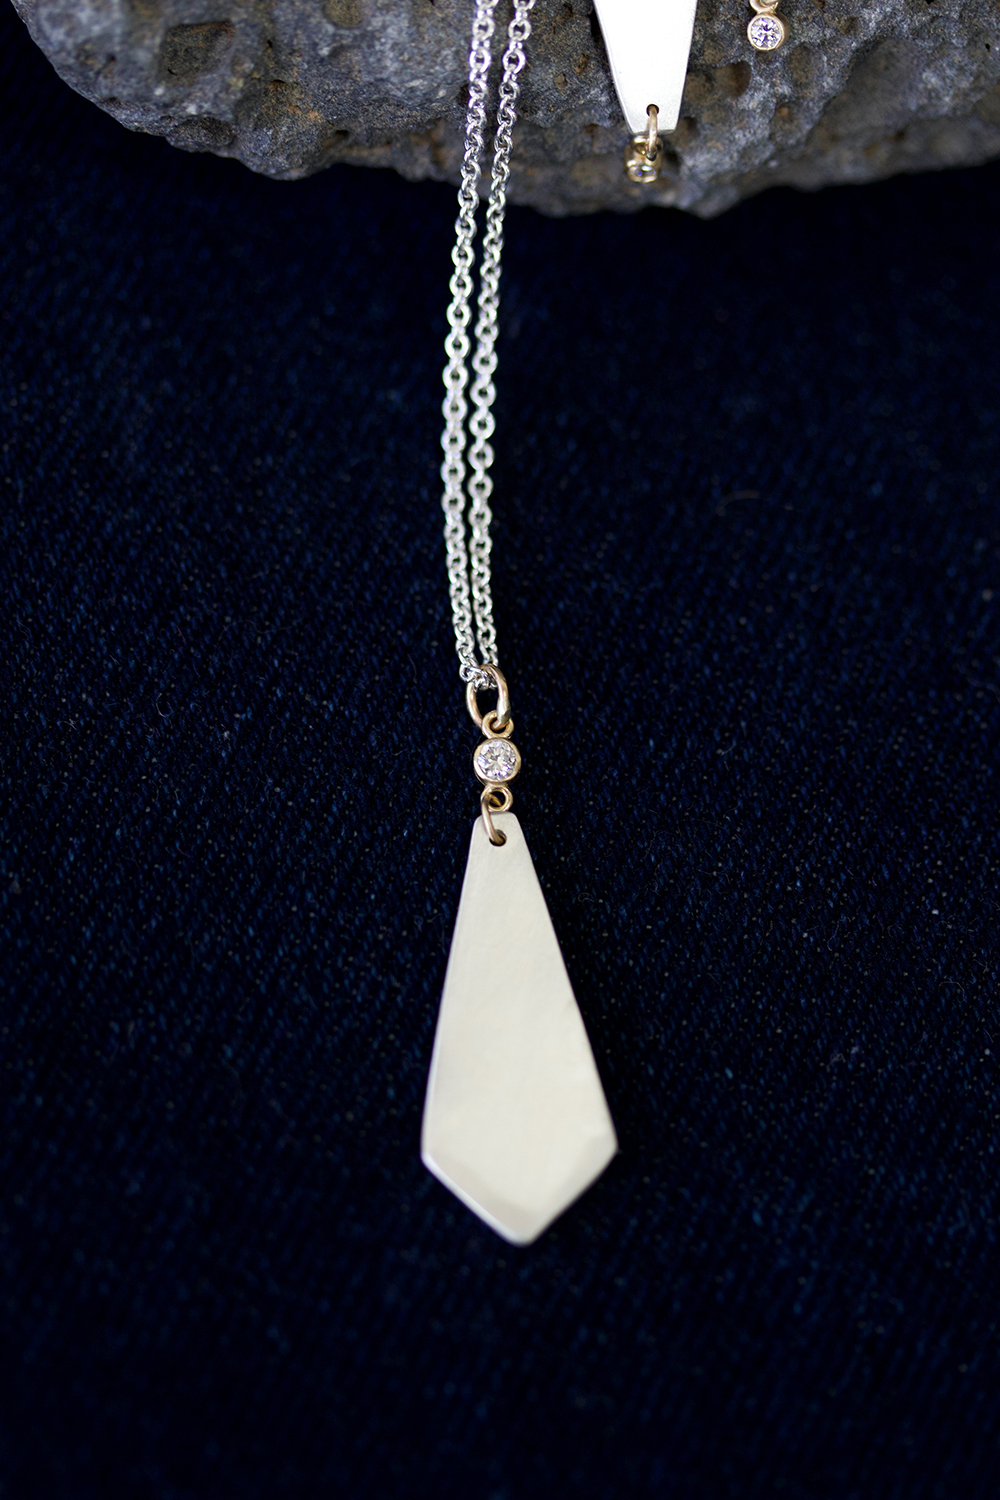 st margarets diamond drop necklace on denim.jpg